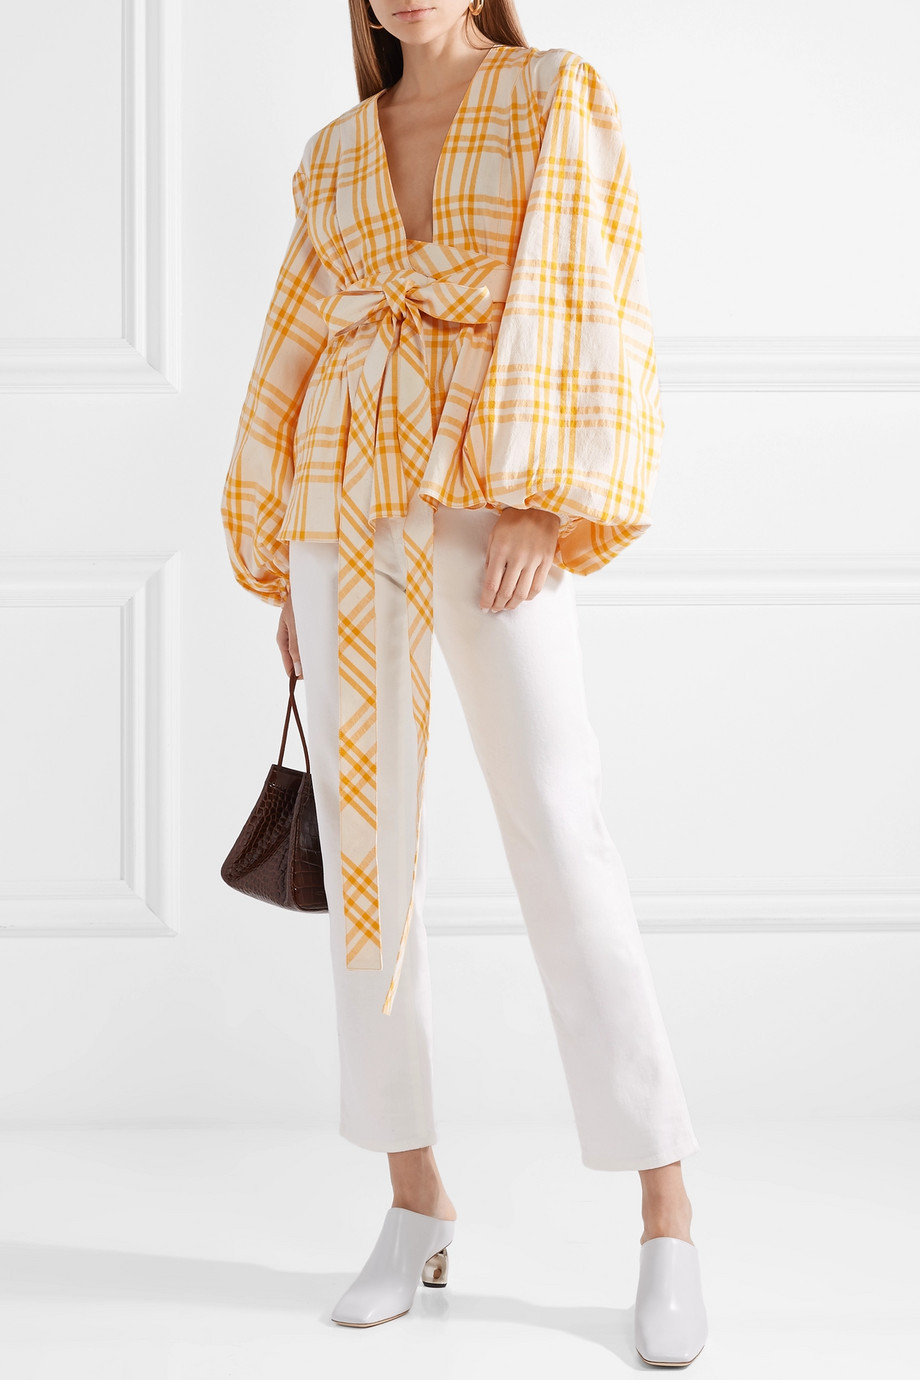 Rosie Assoulin Checked cotton-voile wrap top $448.50